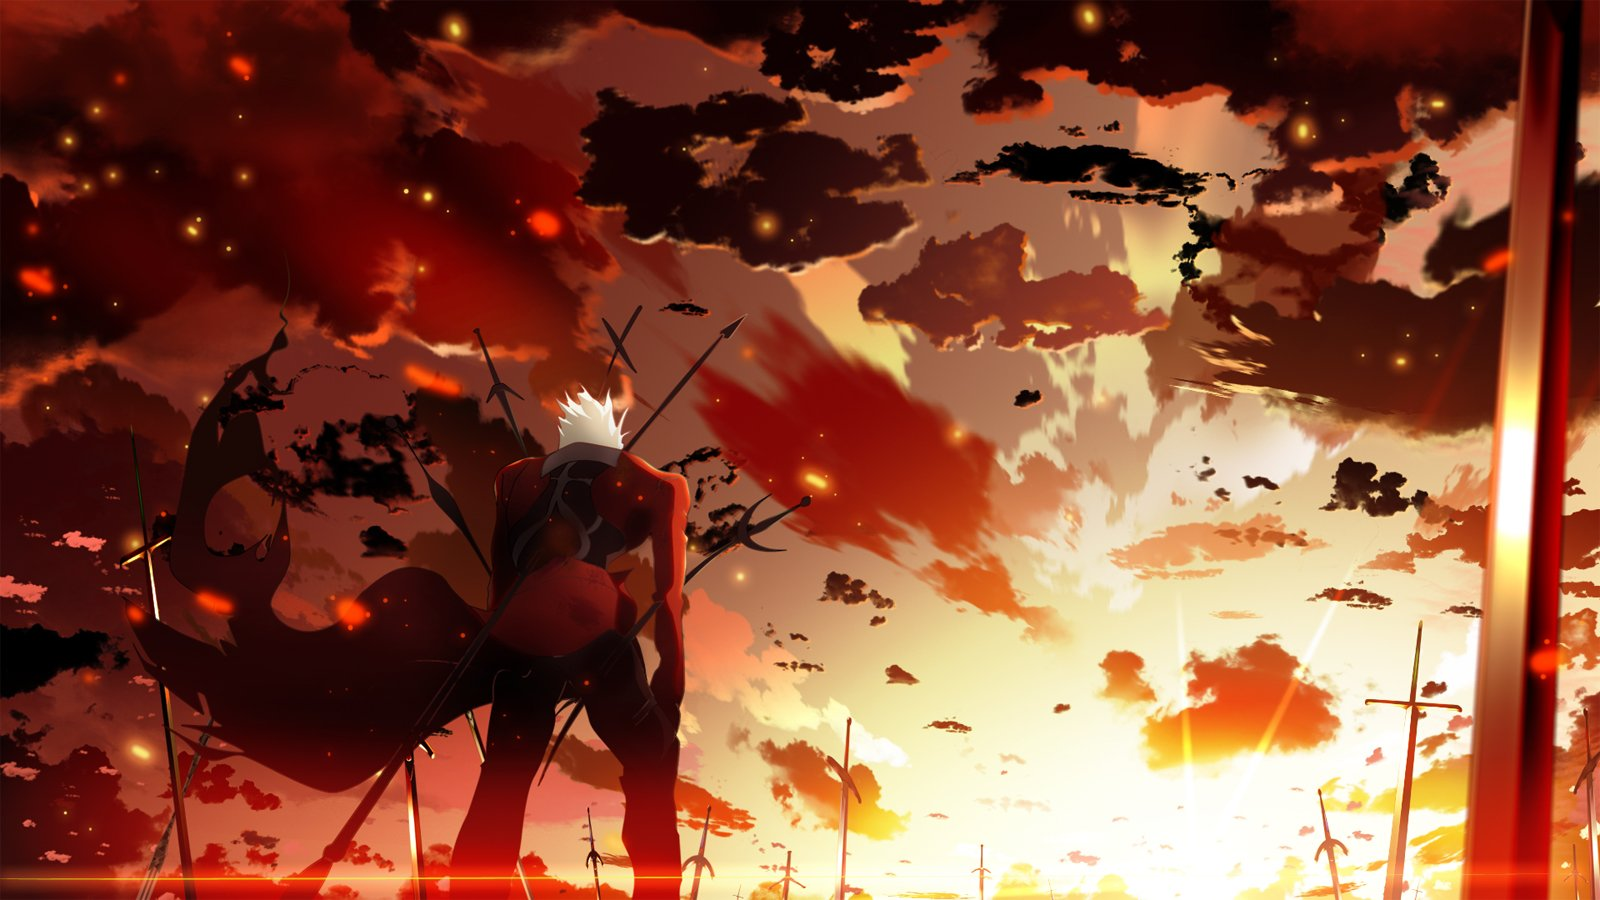 archer clouds fate stay night sky skyt2 sunset wallpaper background 1600x900